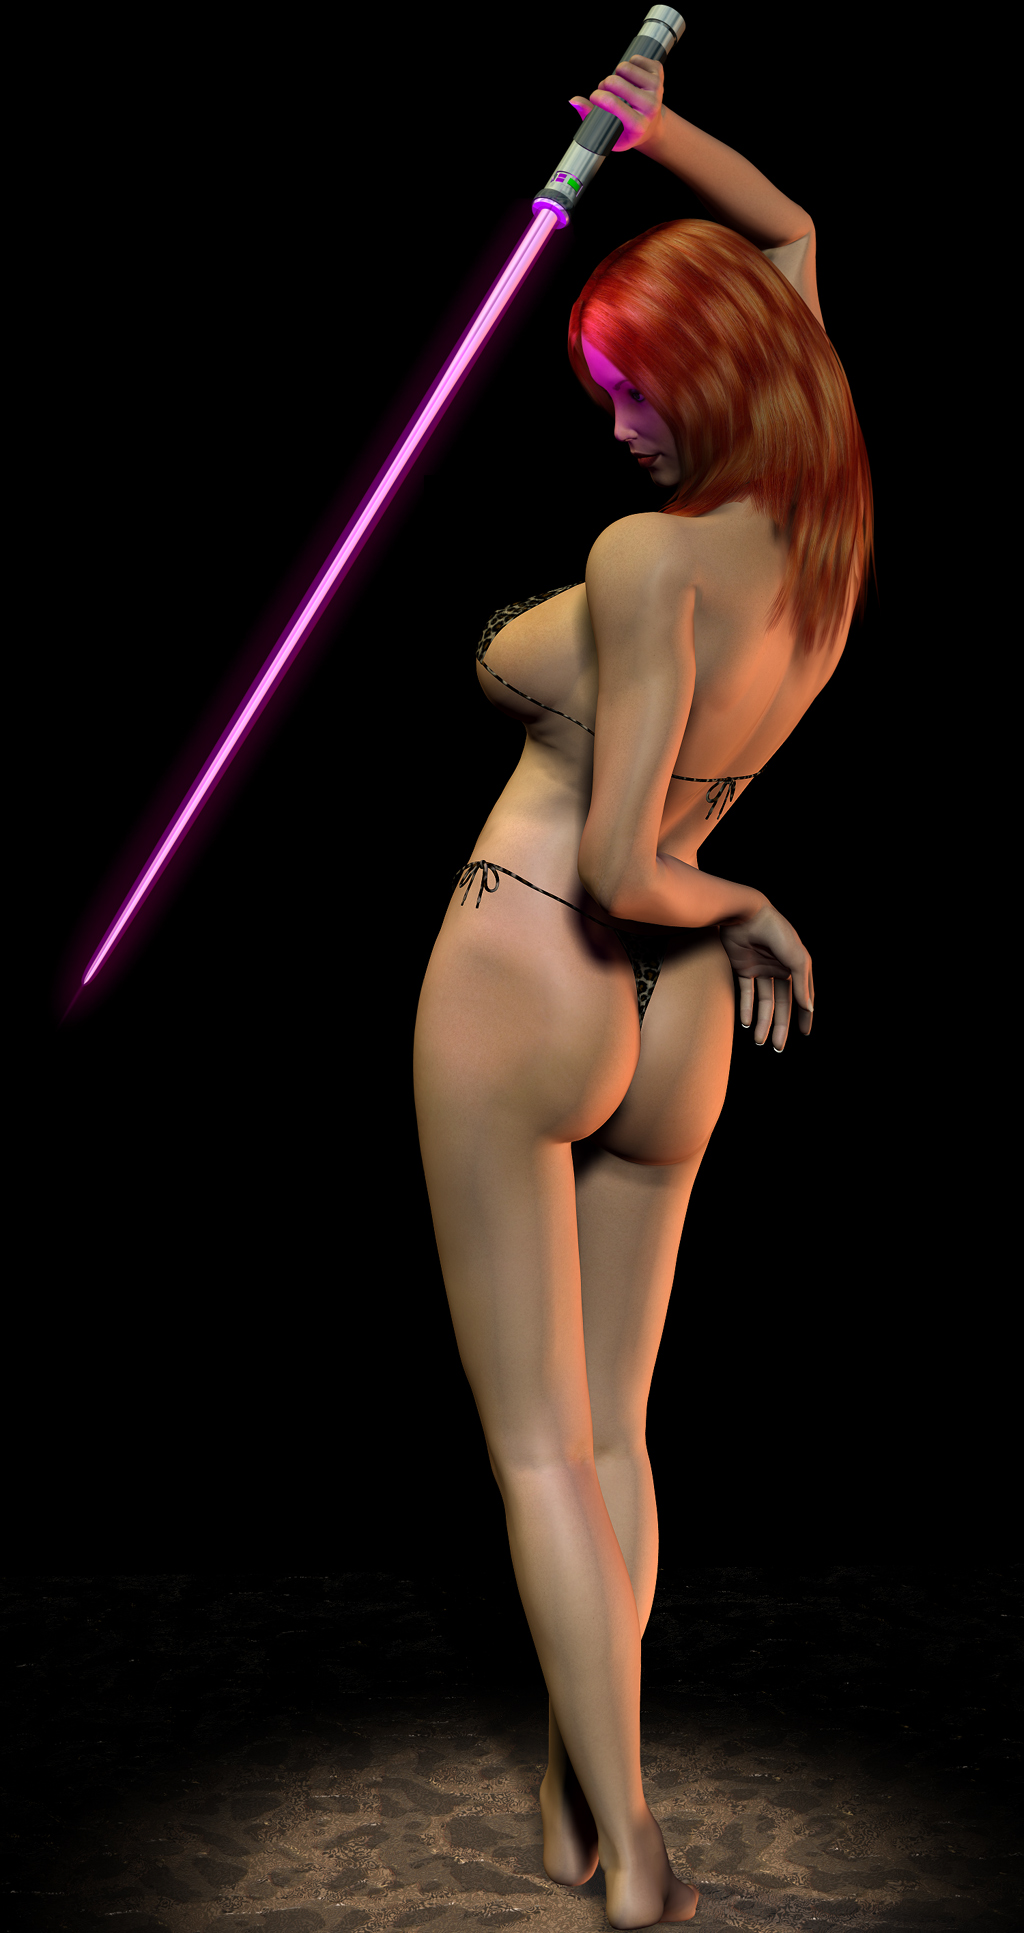 Mara elf skywalker nude anime image